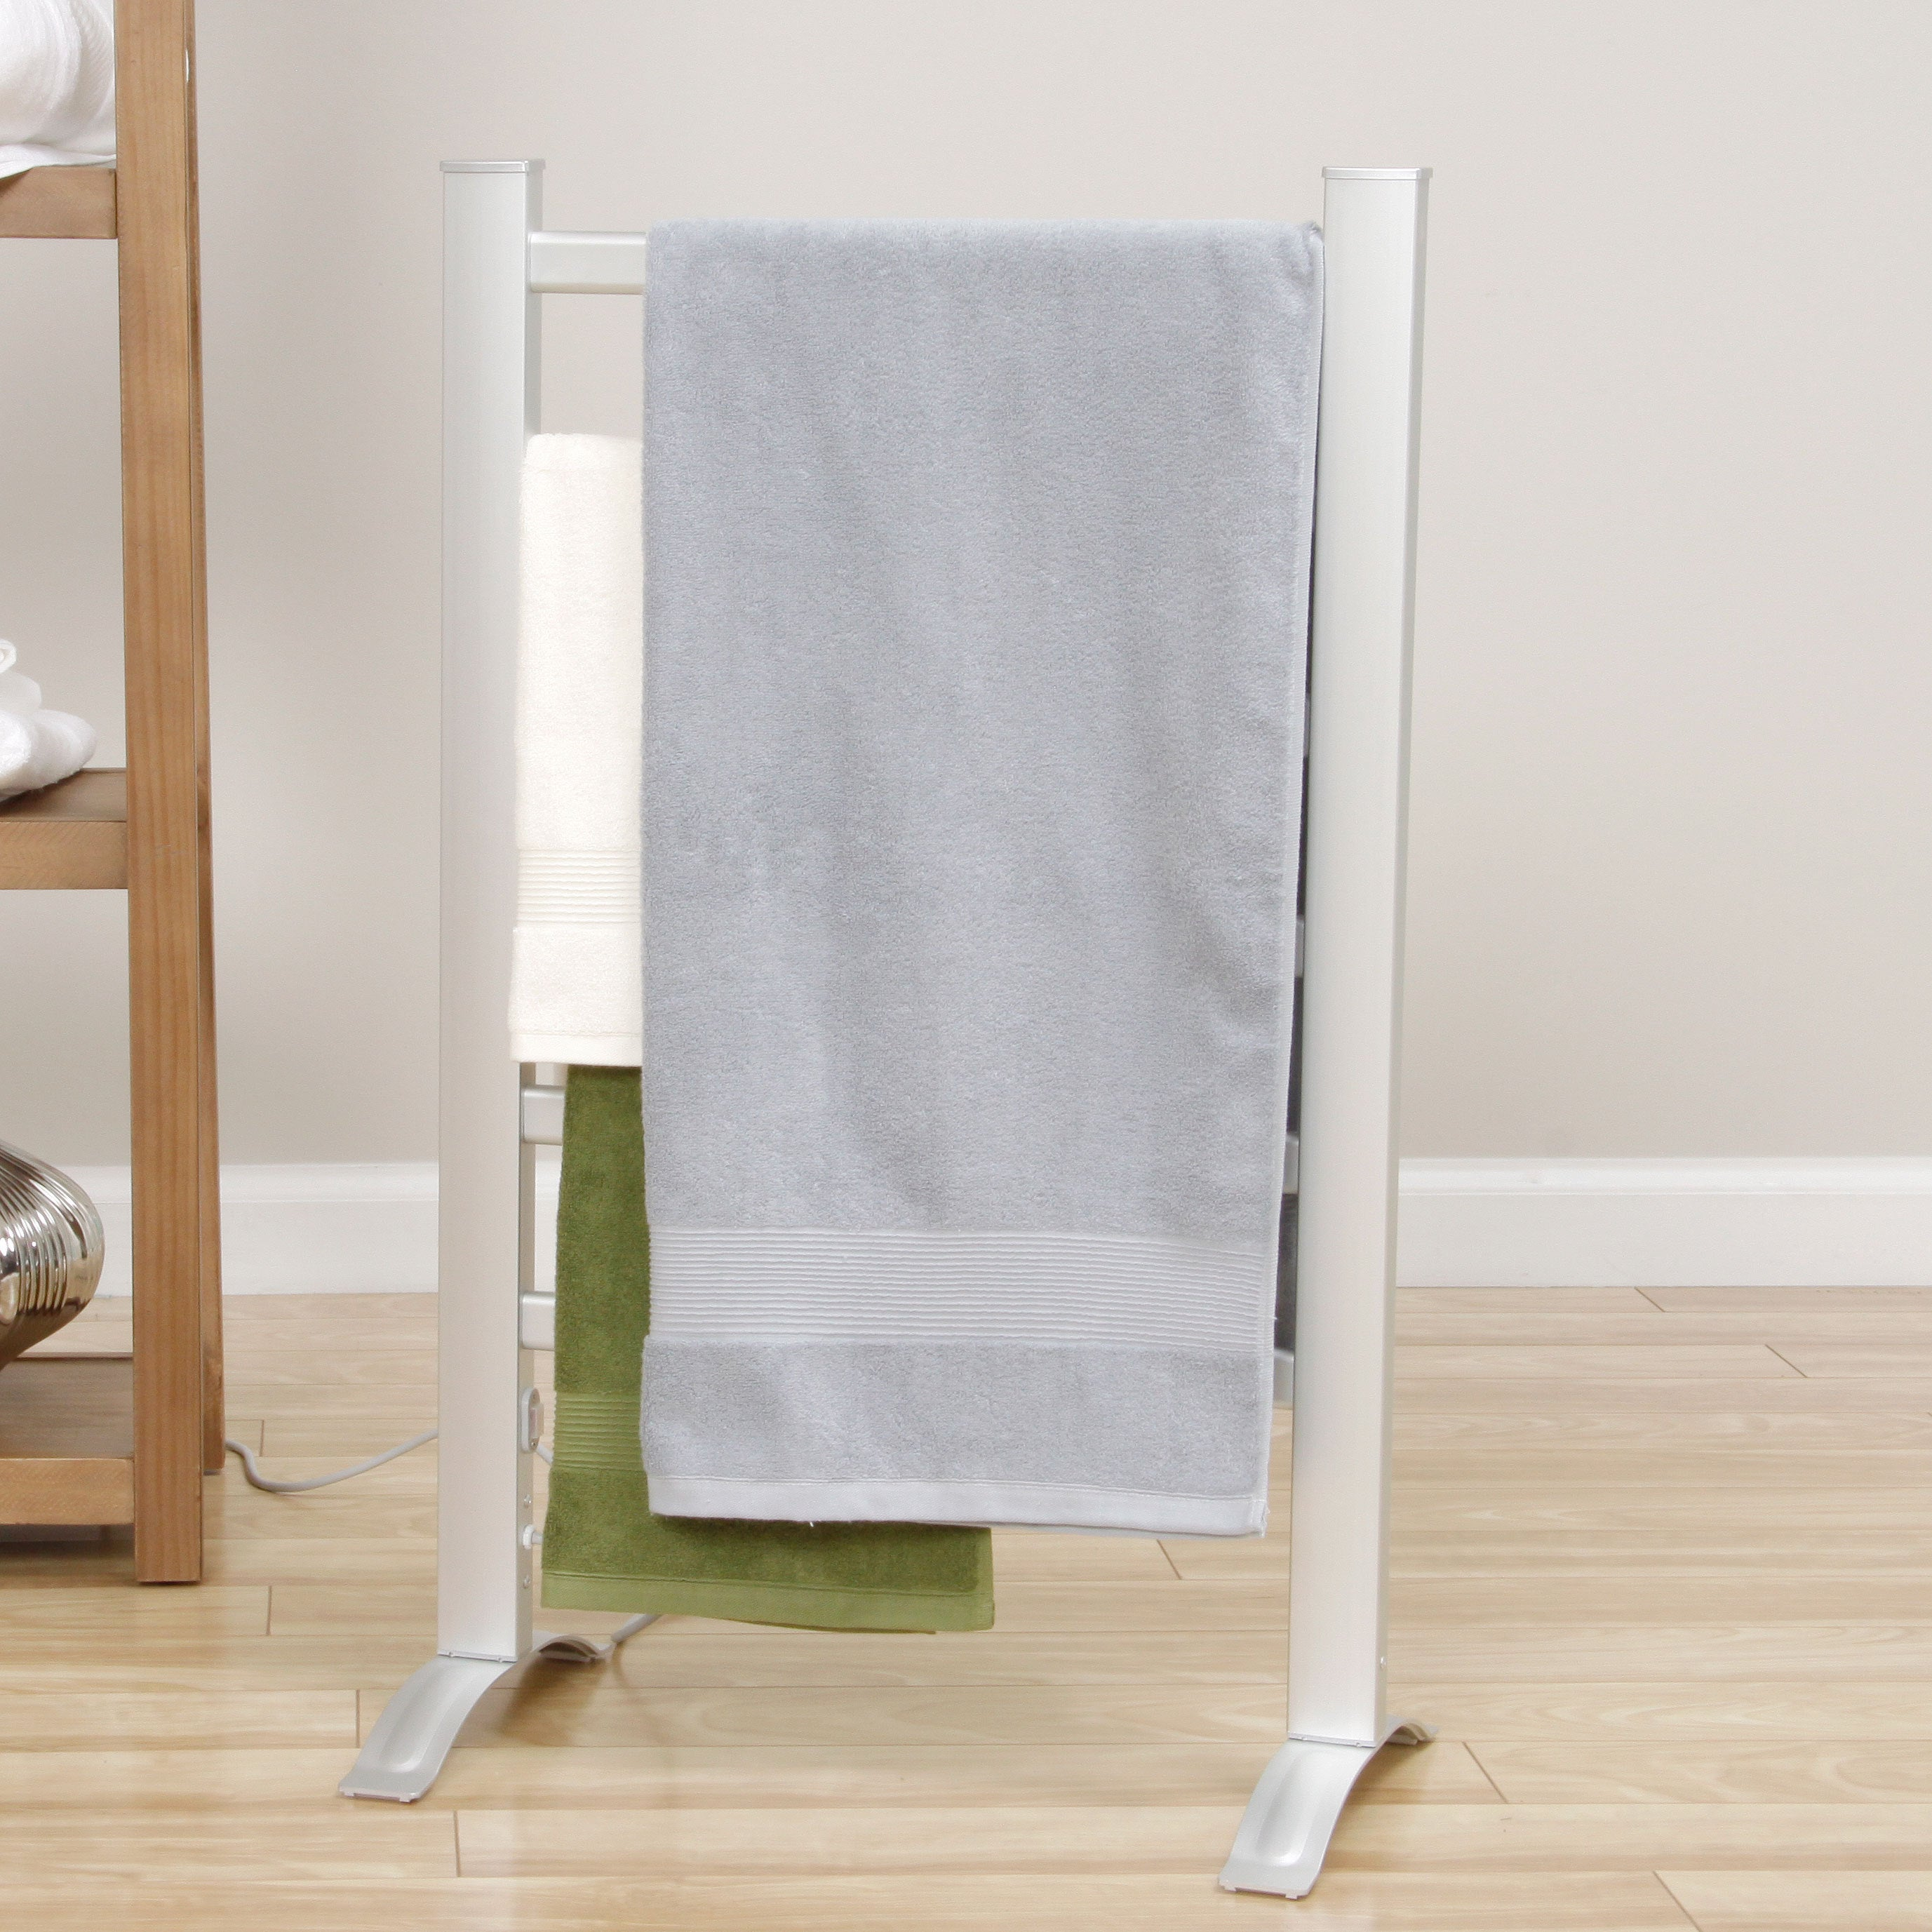 free standing towel warmer. Royal Elegance Towel Warmer Drying Rack - Free Shipping Today Overstock 13348260 Standing E